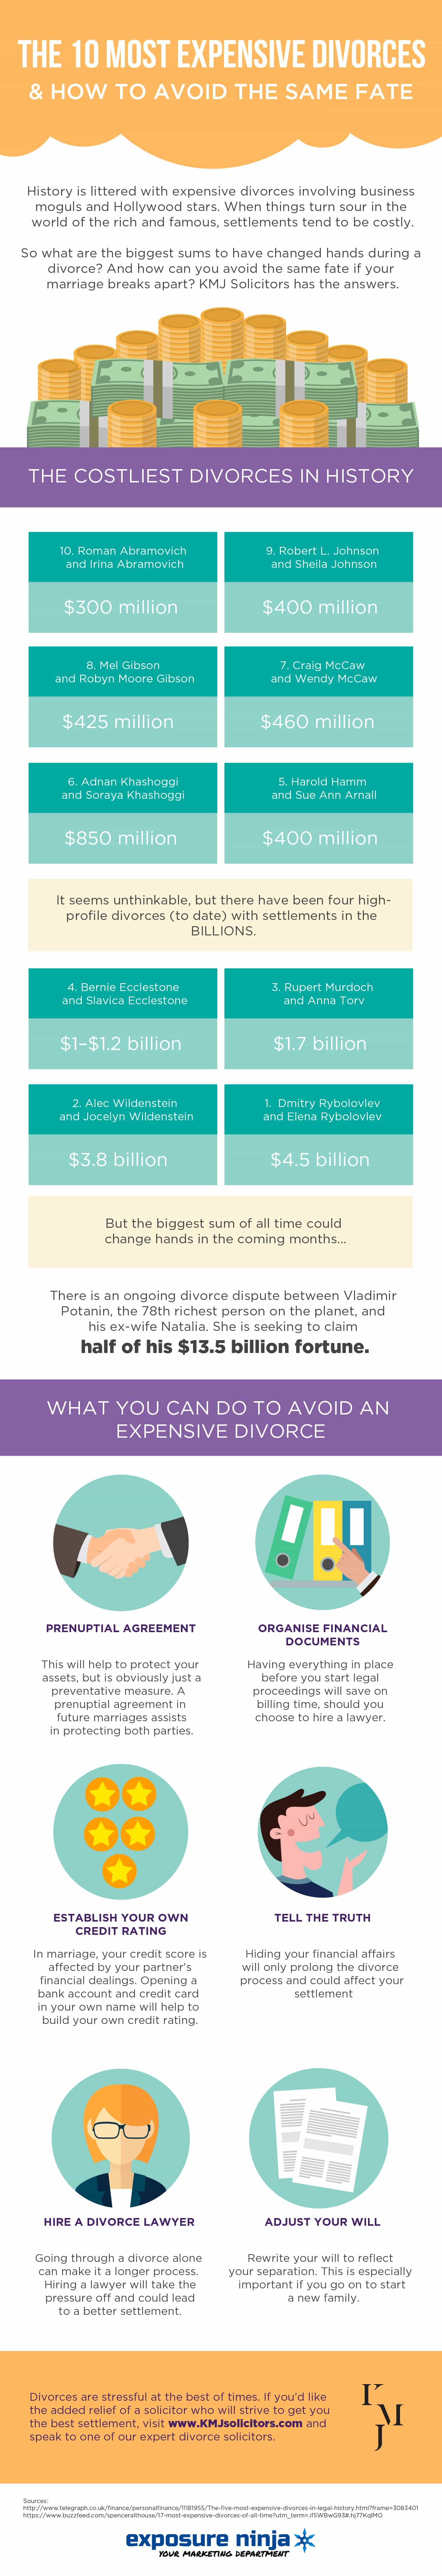 An infographic from our London divorce lawyer showing the most expensive divorces in history